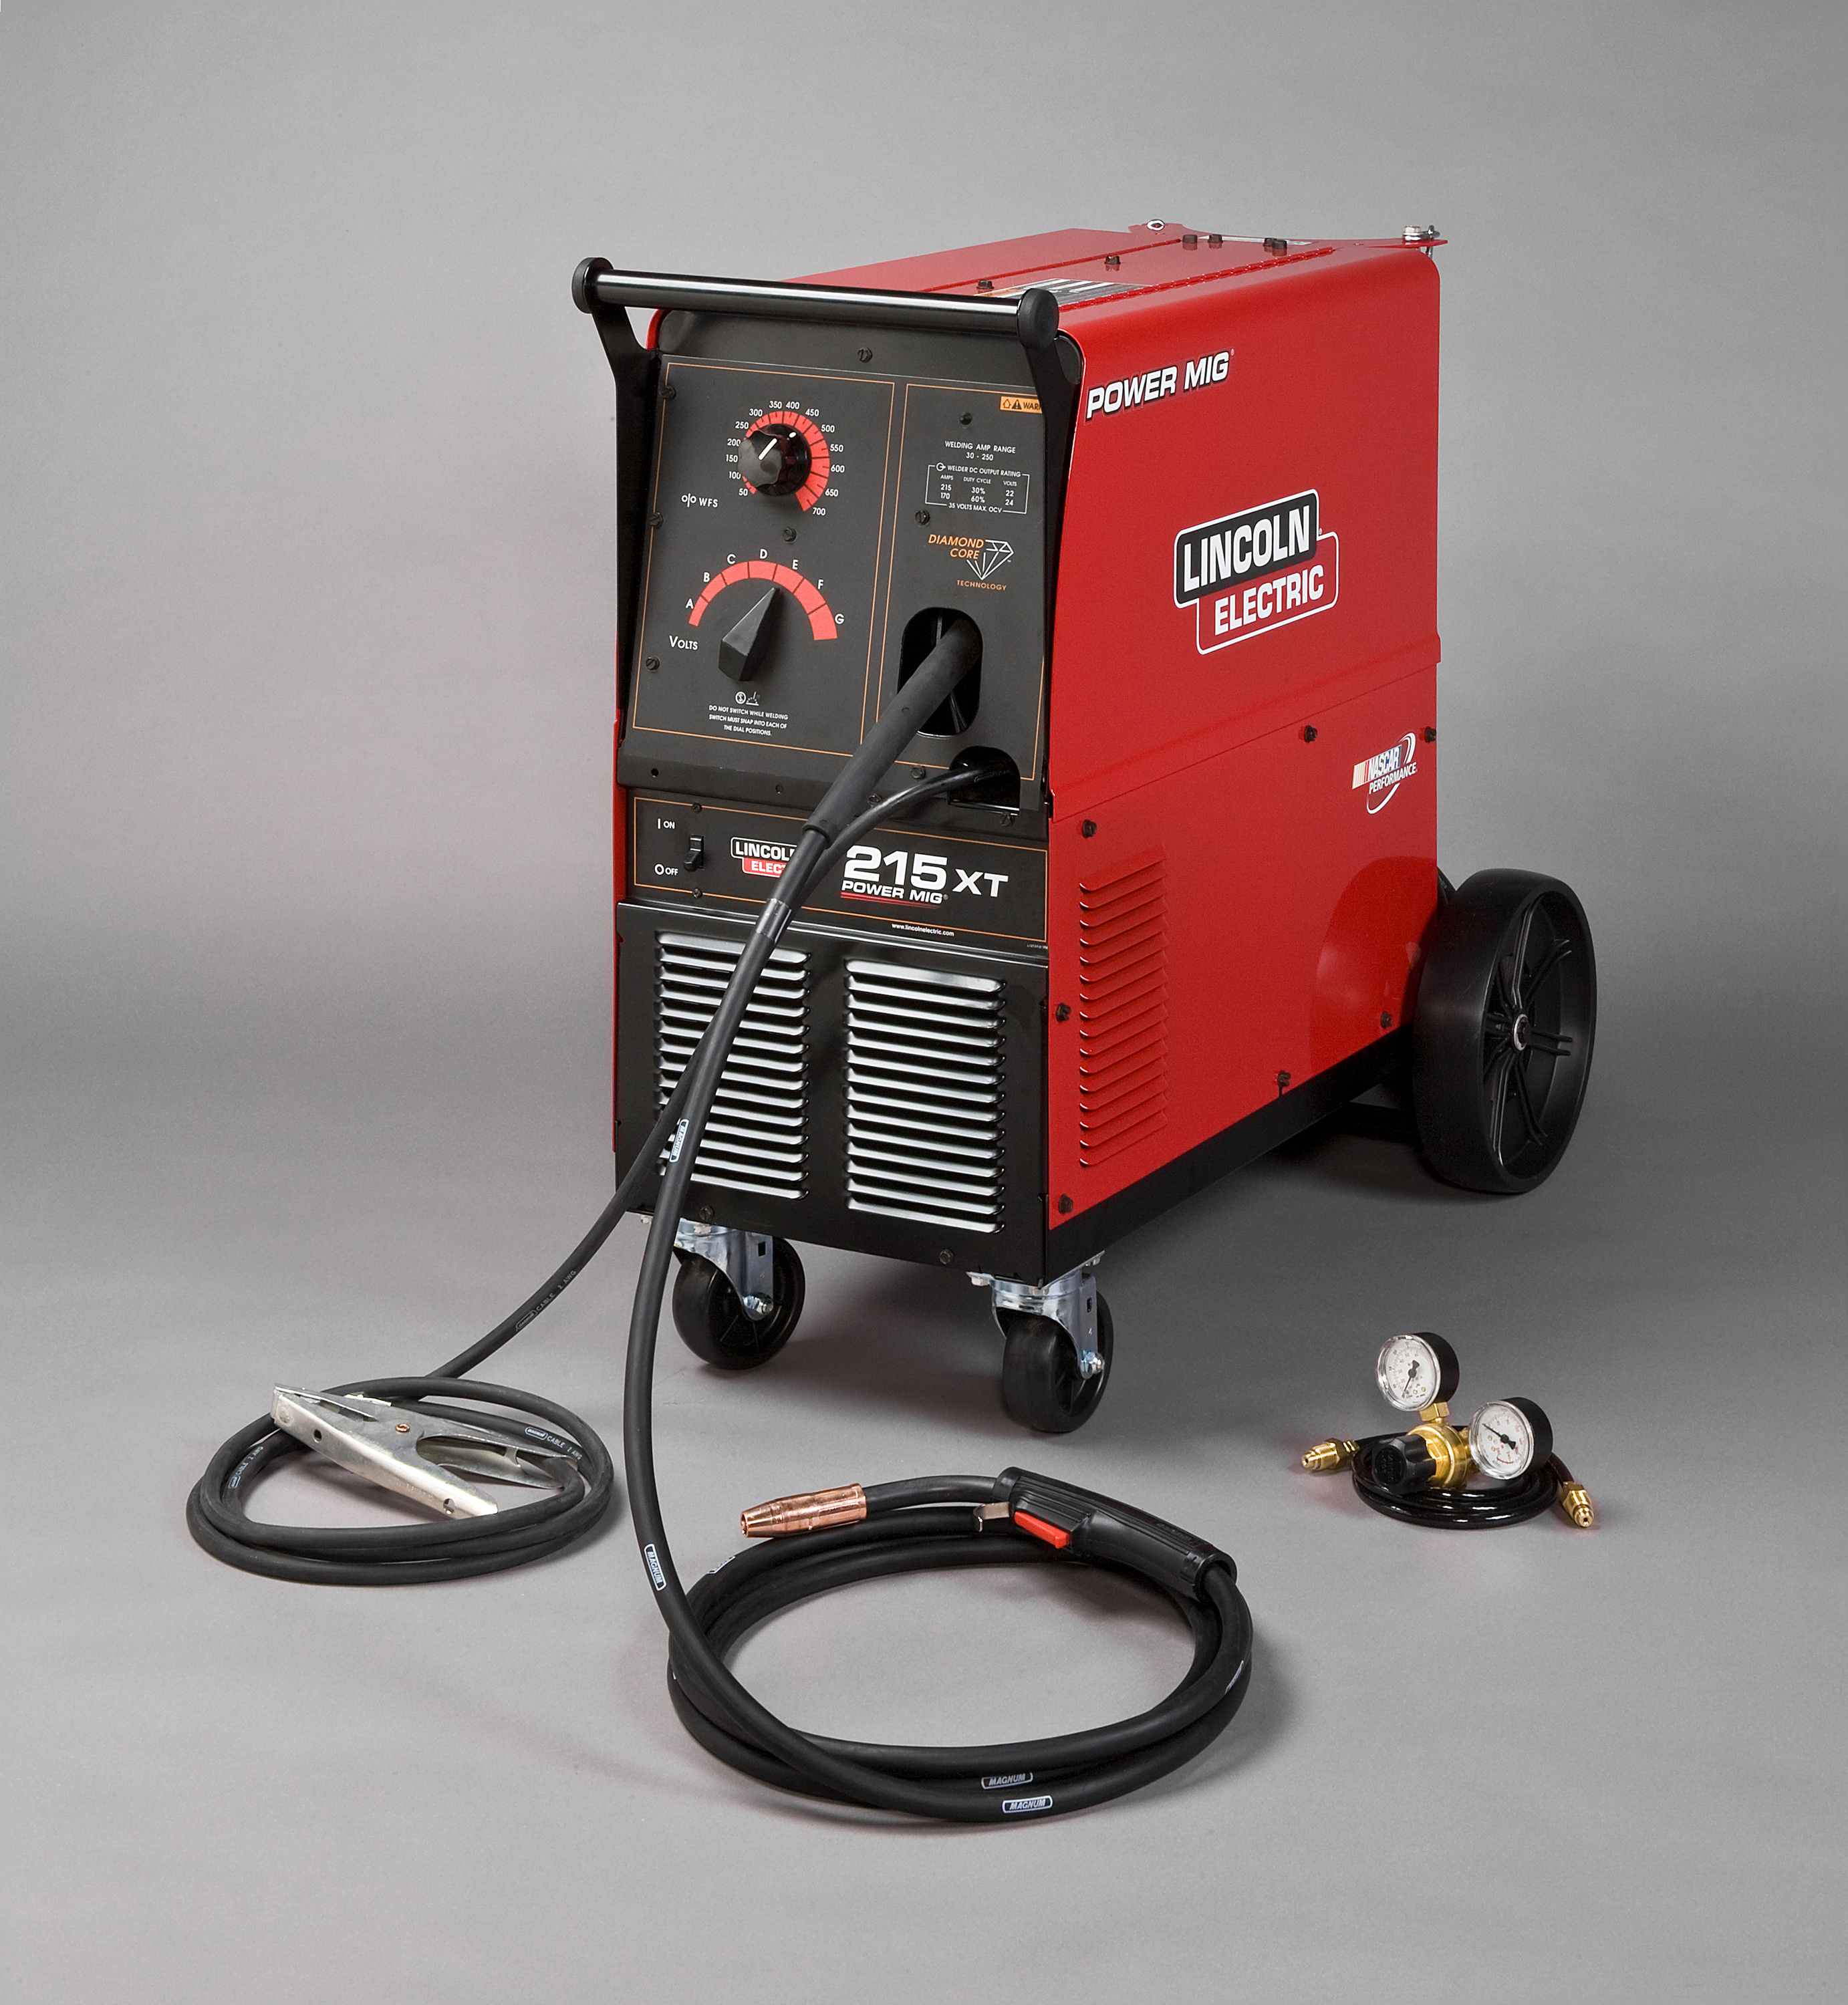 welding heavy we special our have rexburg perfect second welders us choice img christmas sale a gun duty welder this amp power supply with gas regulator for the mig lincoln comes